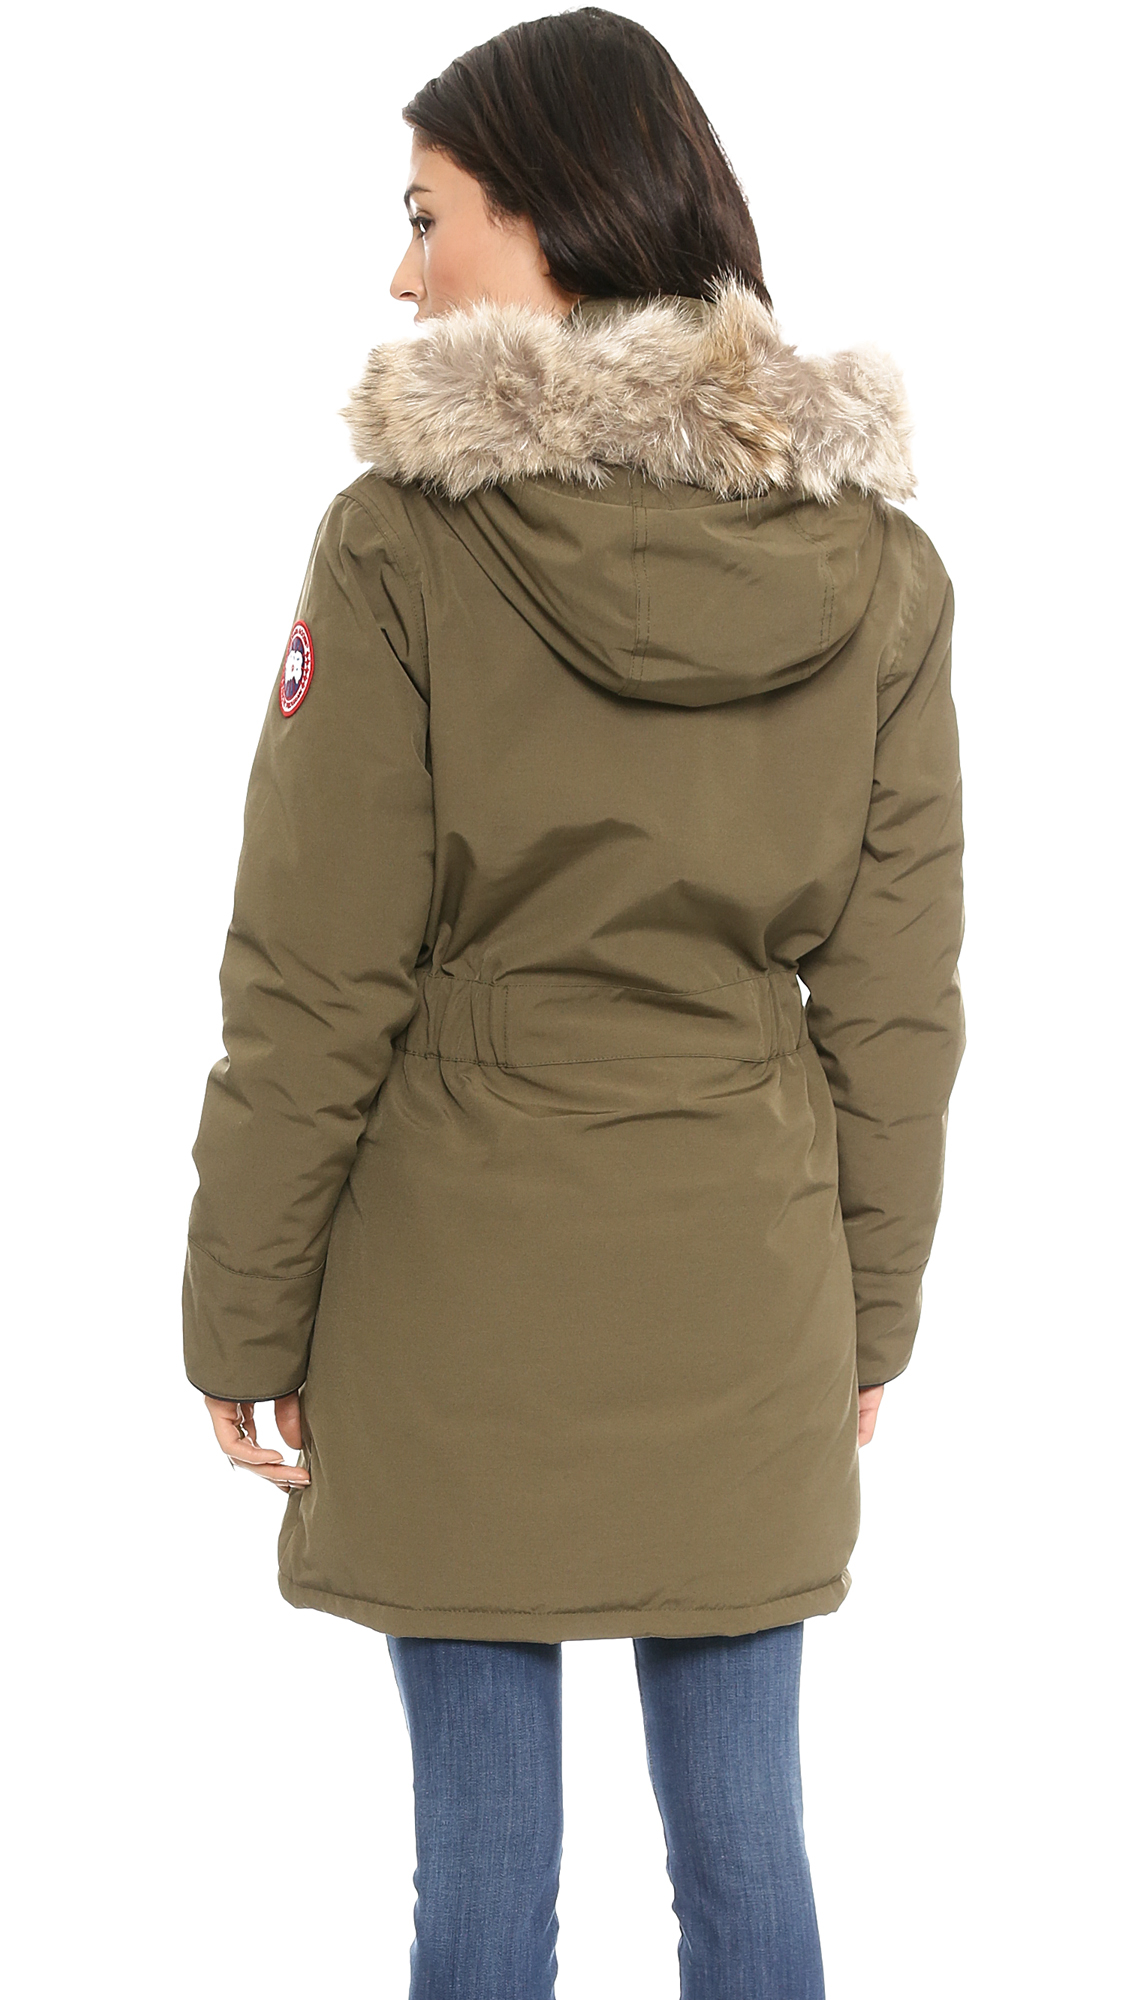 Canada Goose expedition parka online price - Canada goose Trillium Parka - Black in Green (Military Green) | Lyst